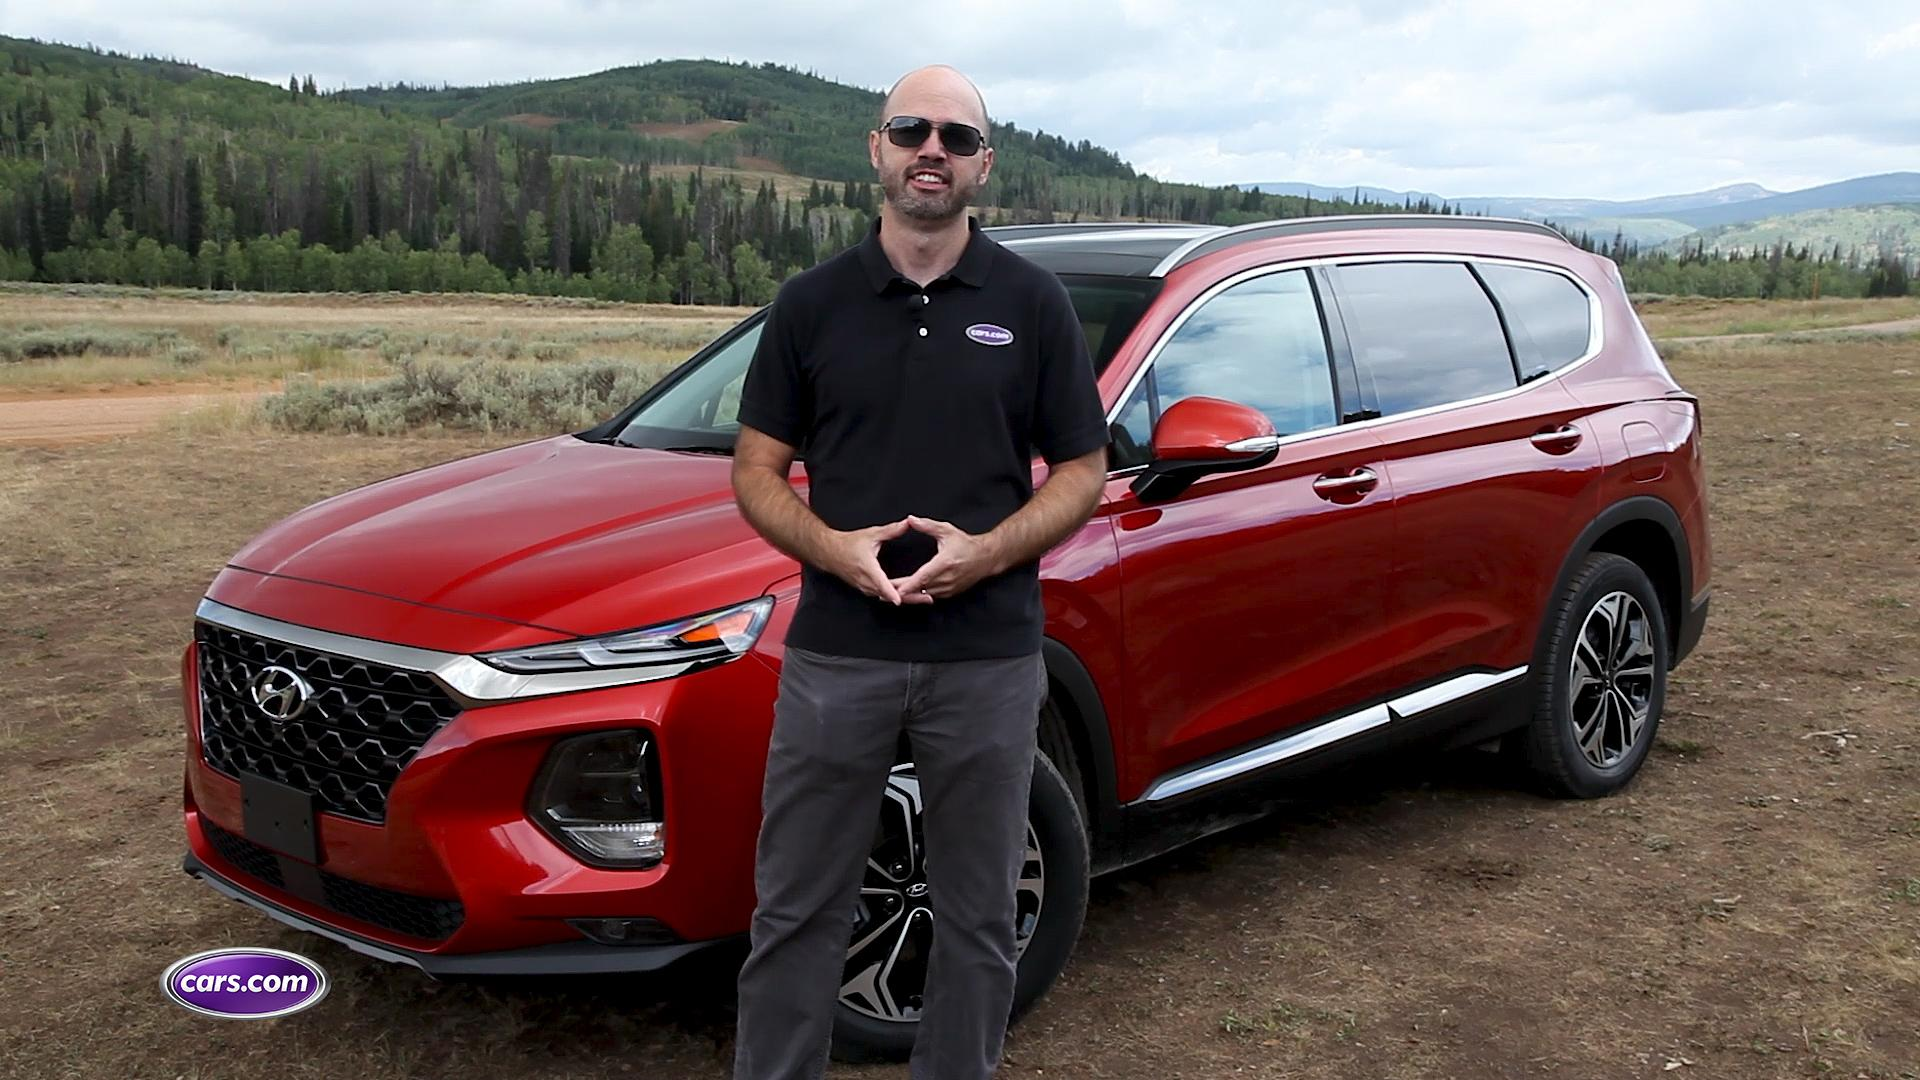 Video: 2019 Hyundai Santa Fe: First Drive — Cars.com